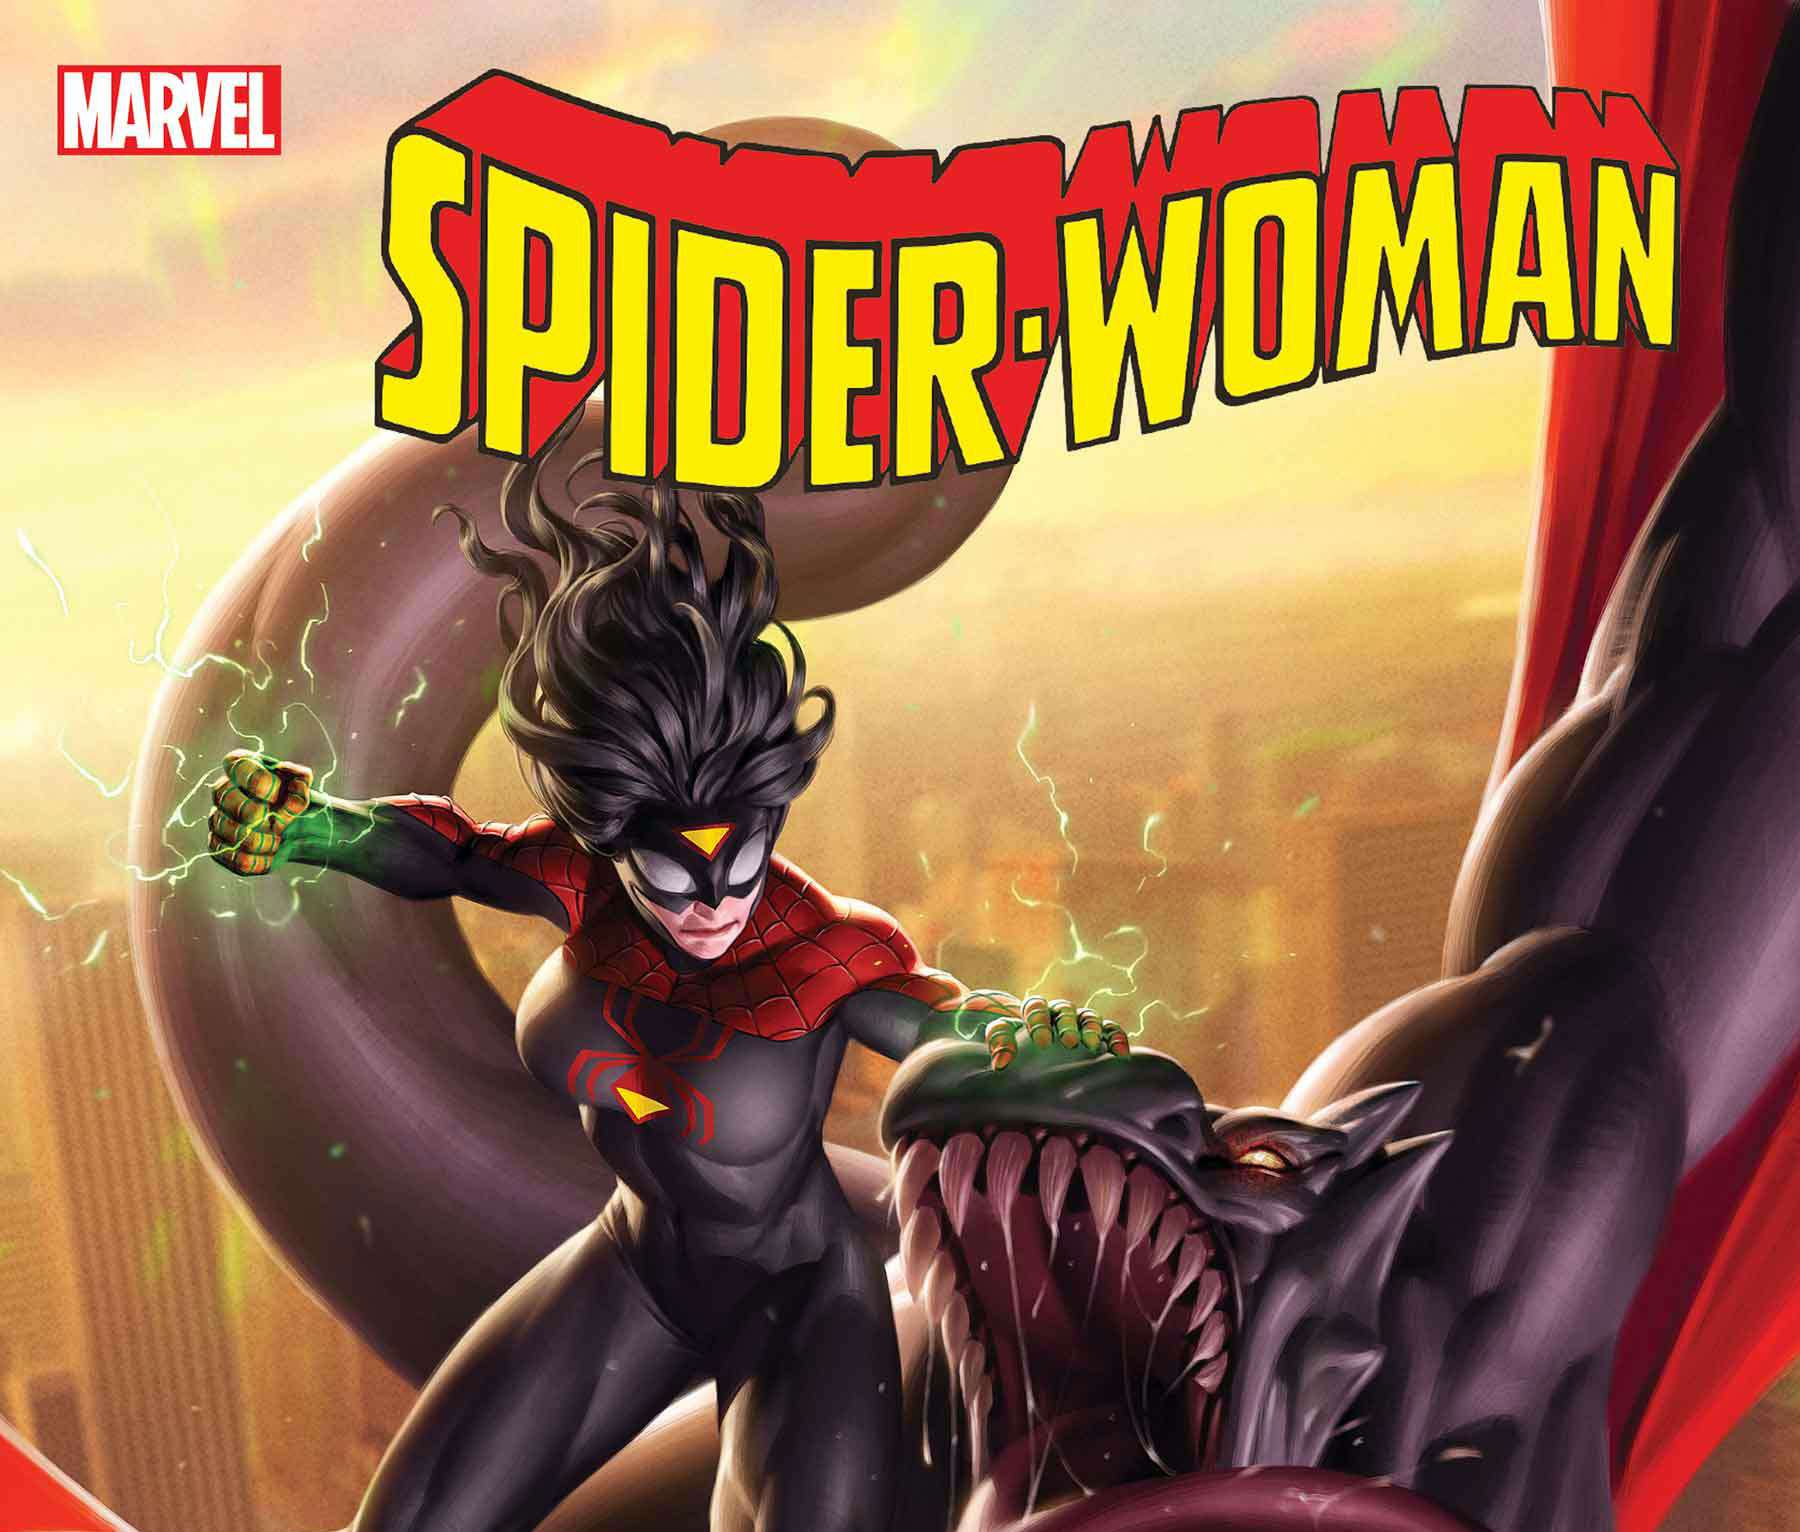 Under the cover of the Knull invasion, Spider-Woman is stealing elements of a cure to her condition…OR IS SHE?